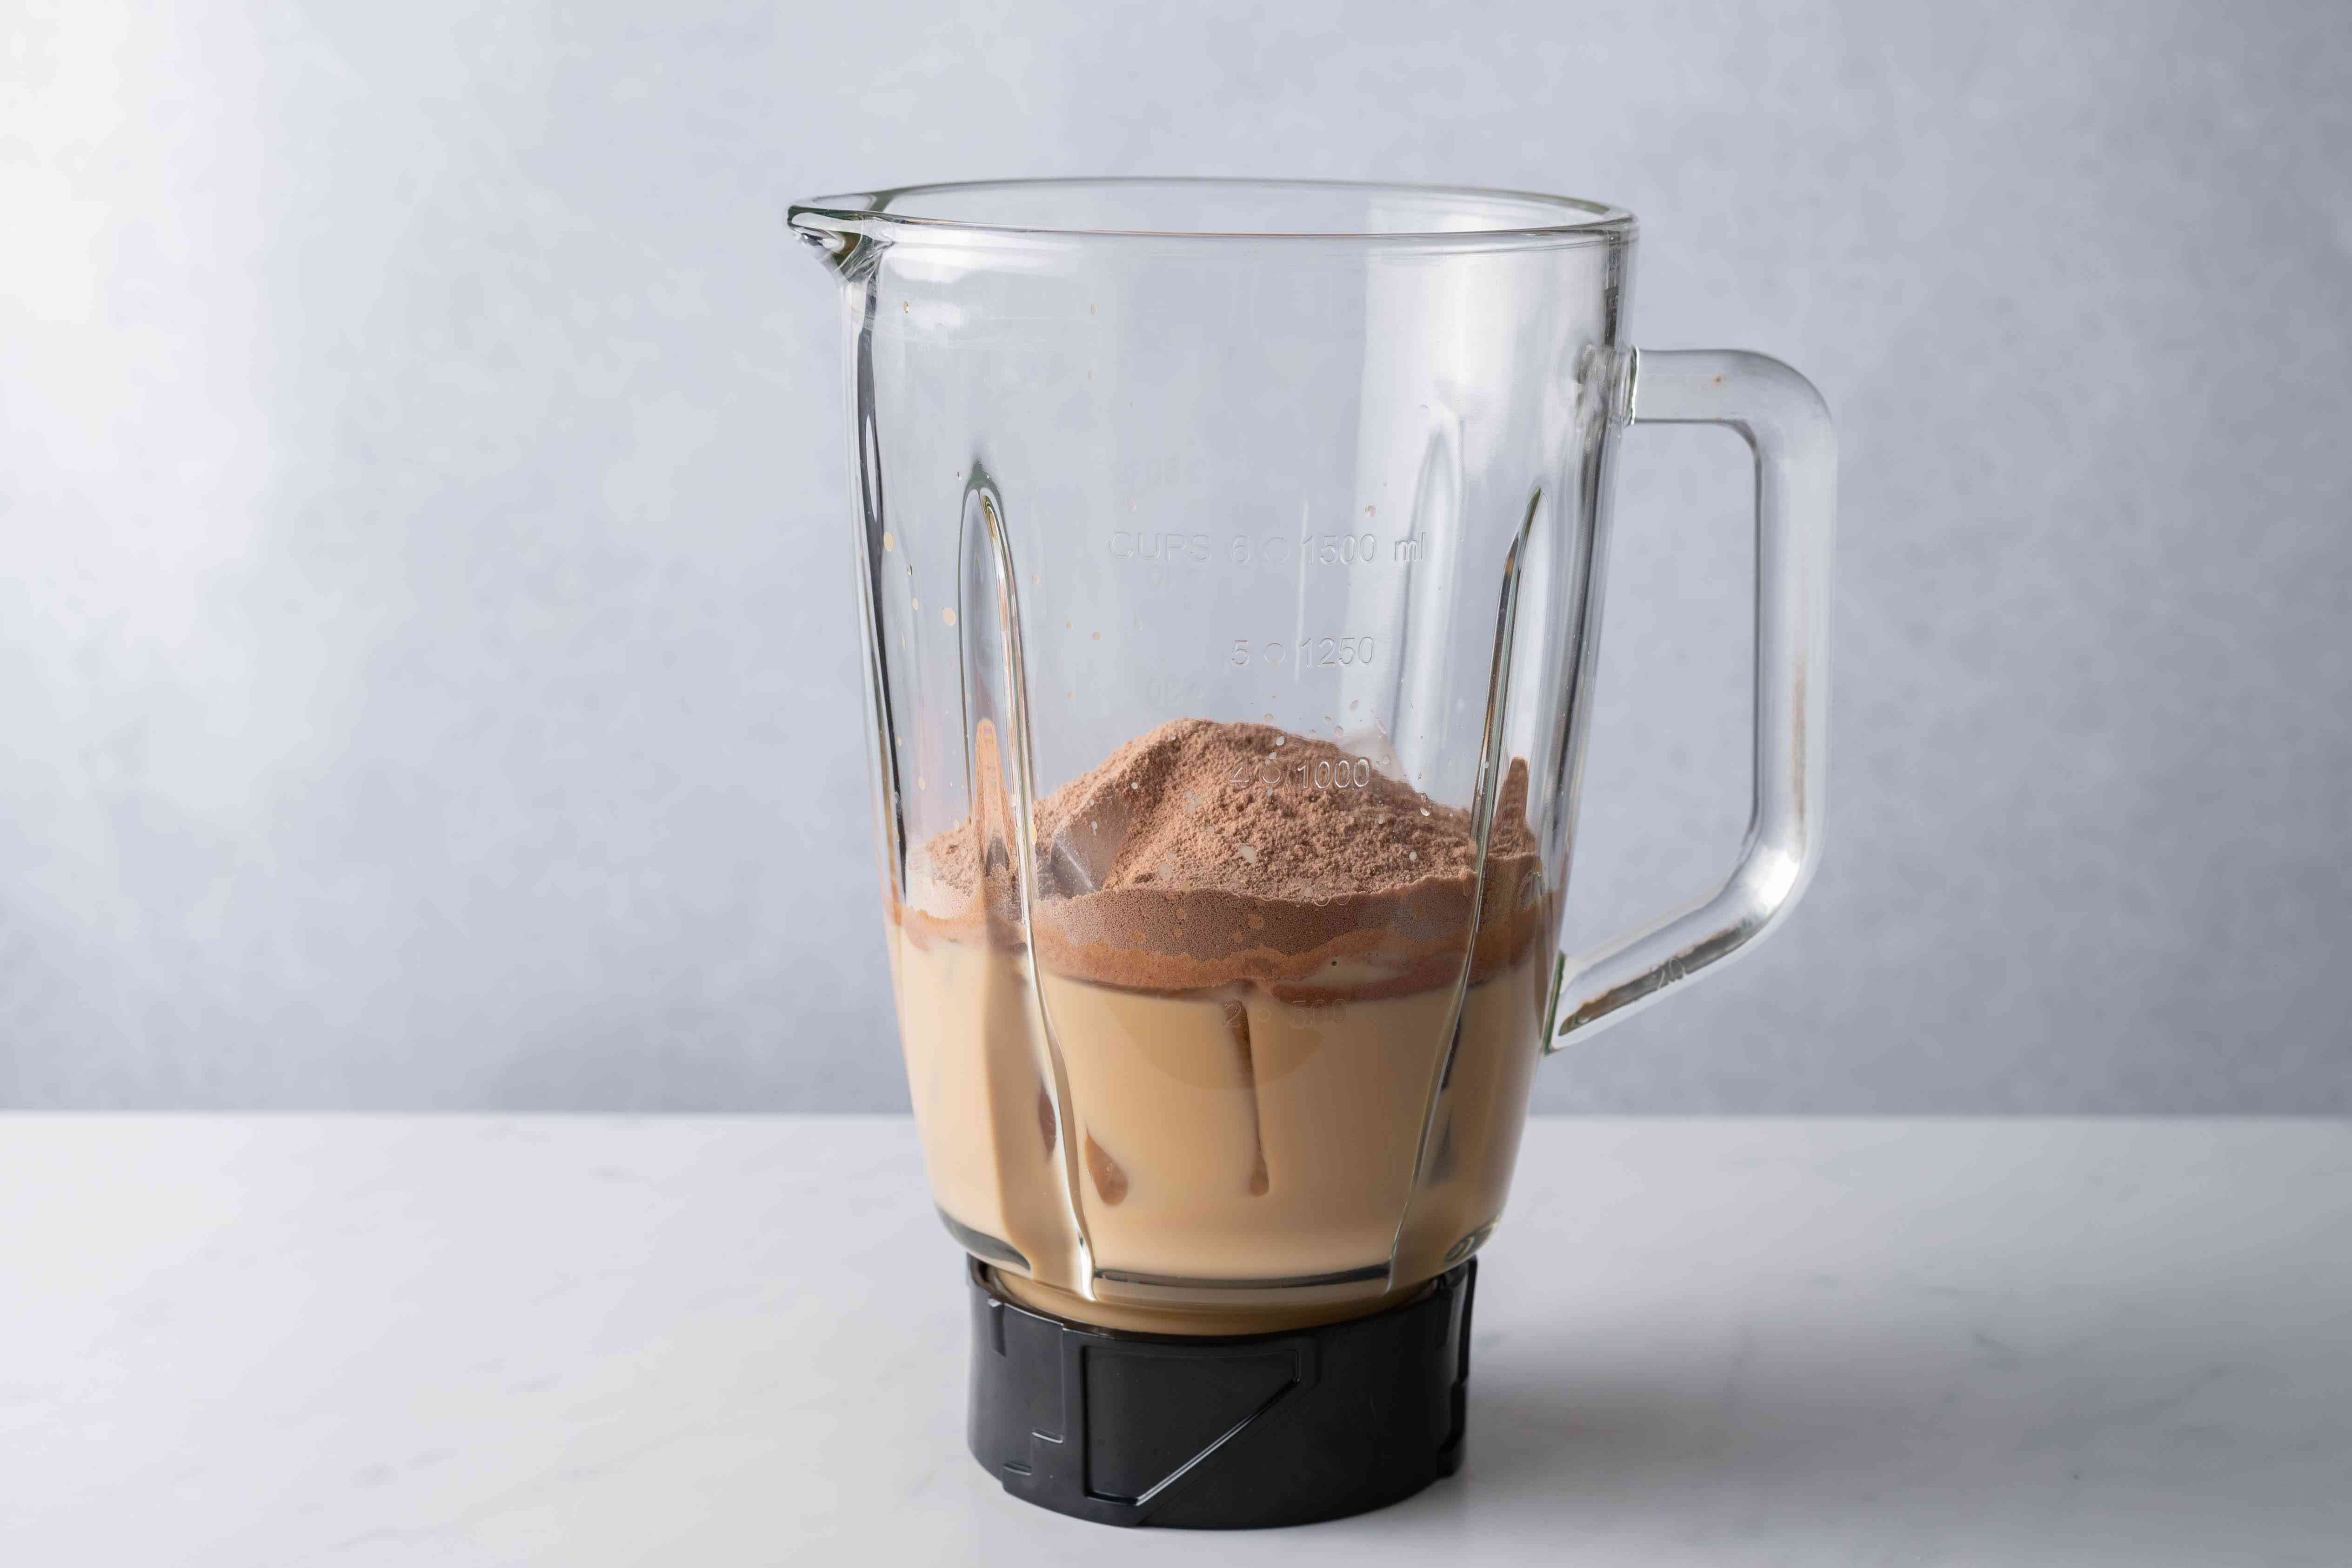 Add the protein powder and ice to the blender